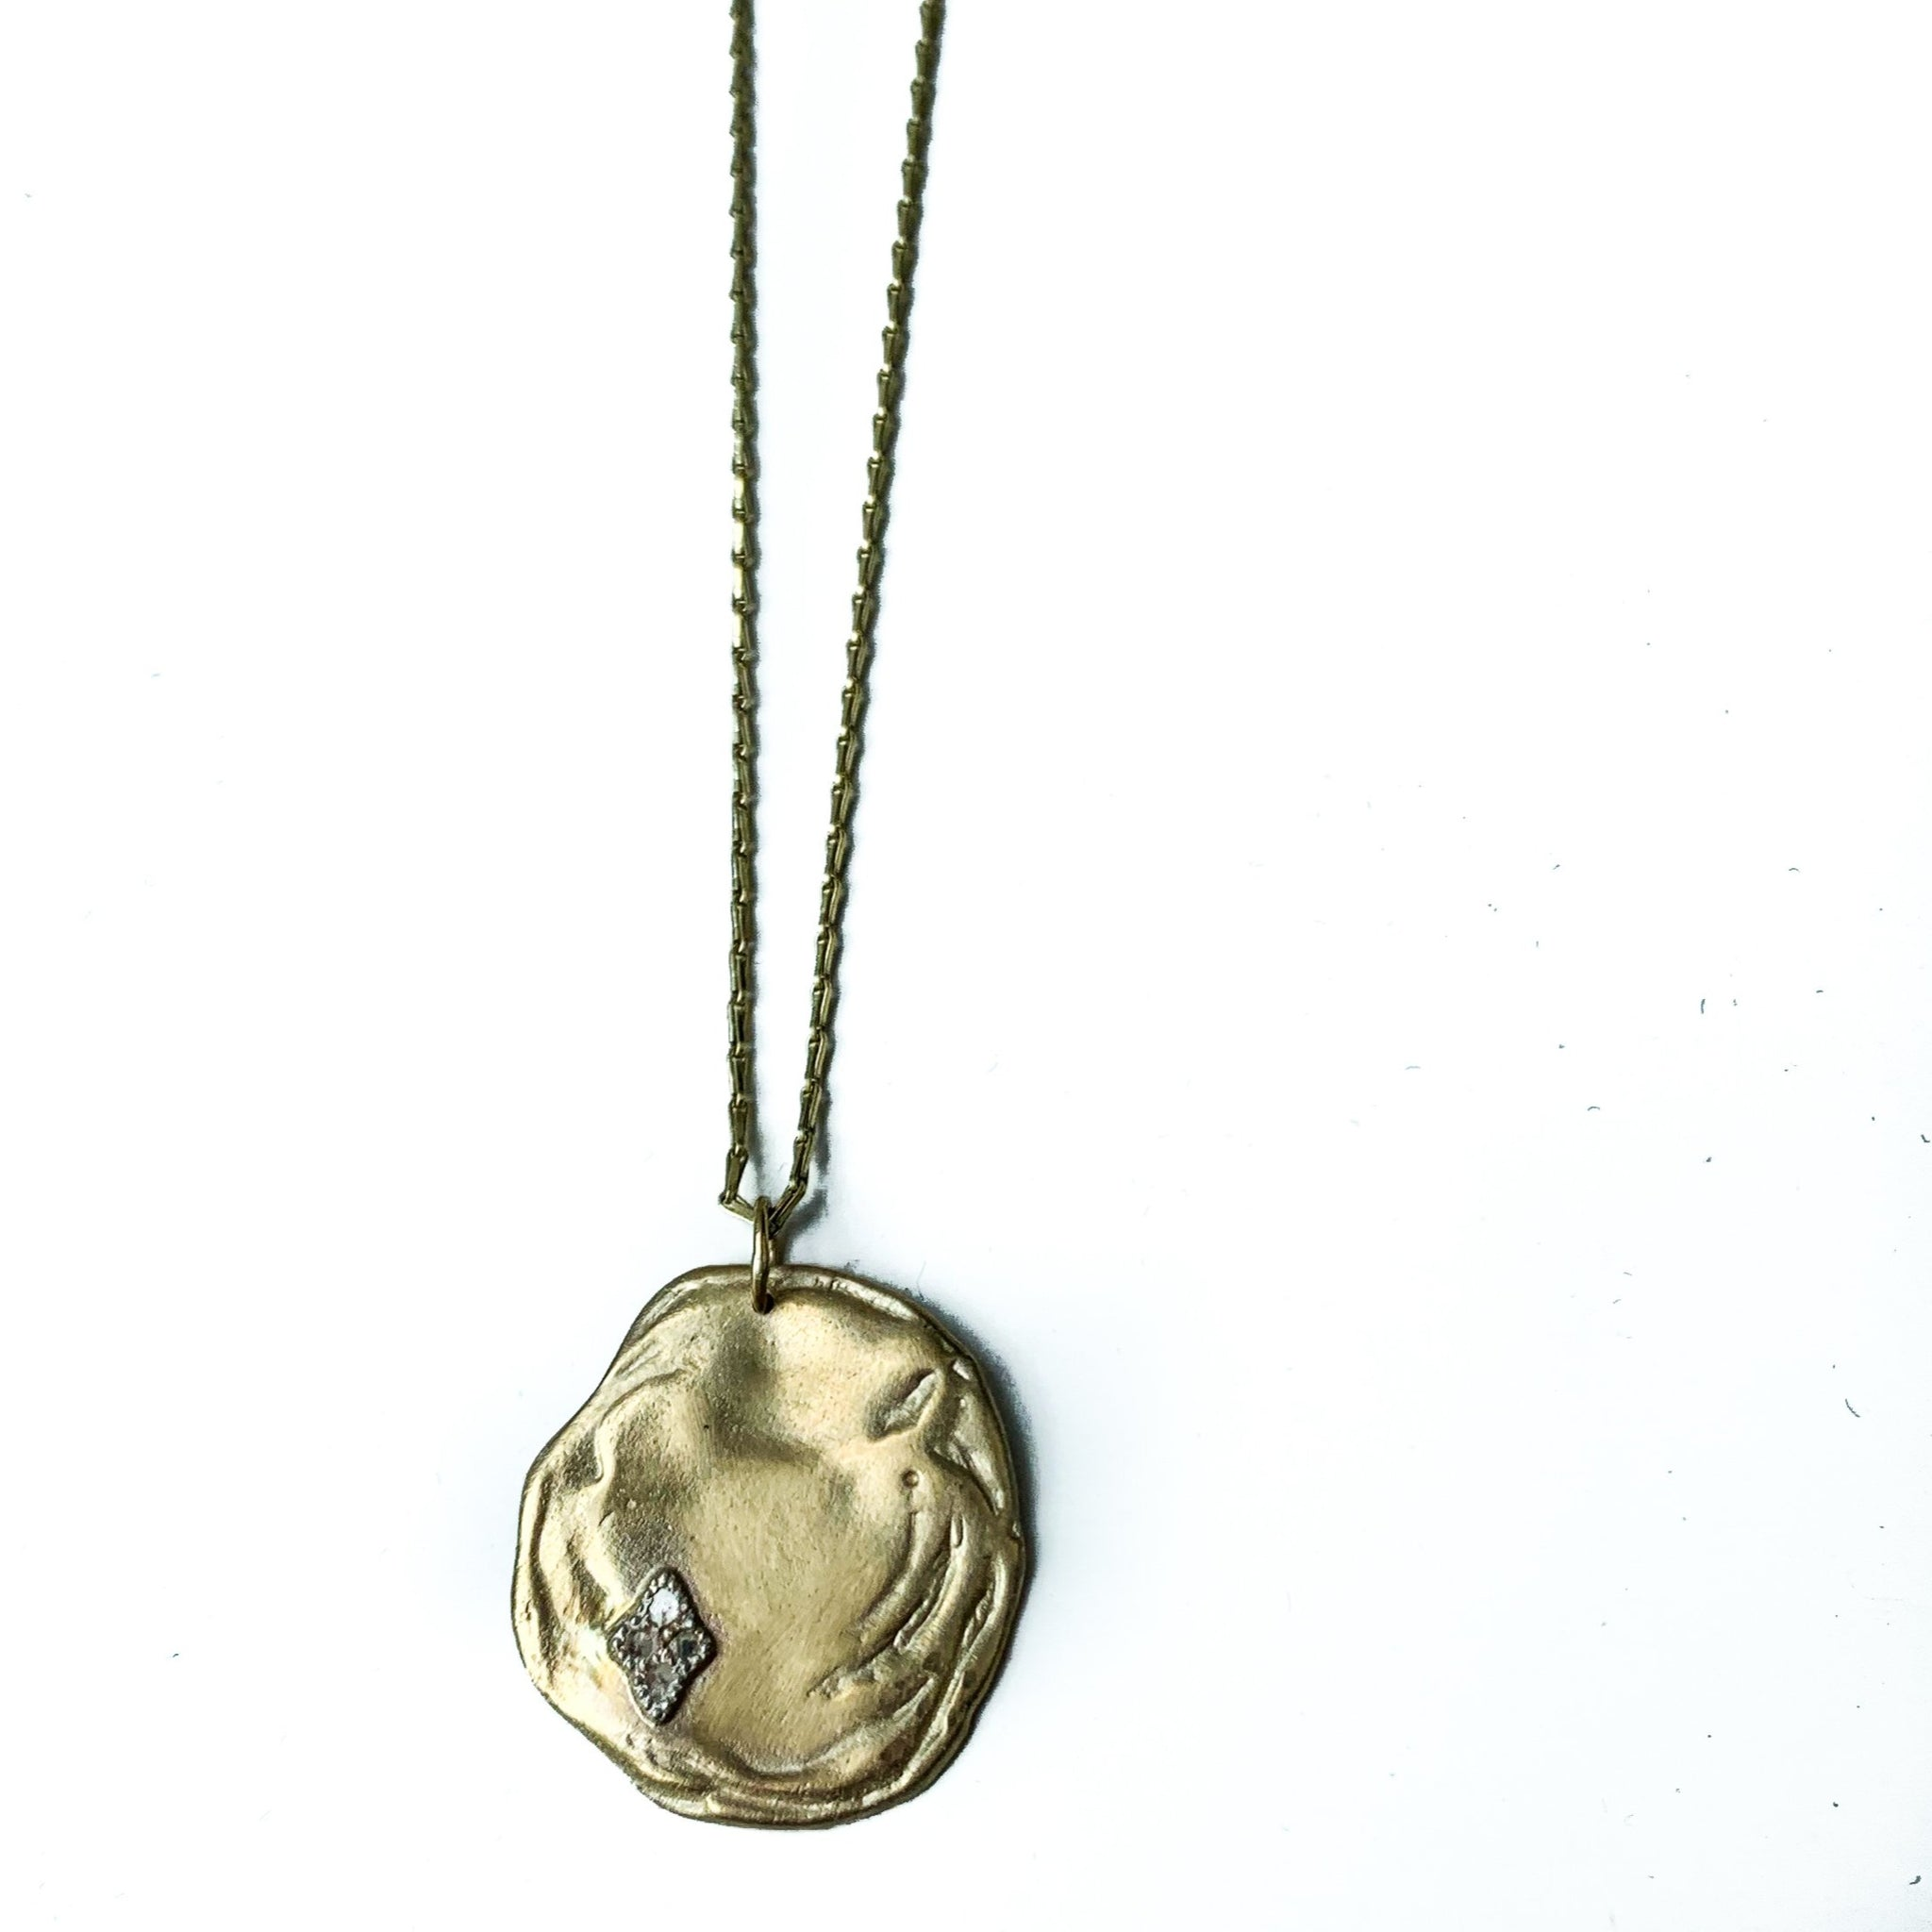 Hayett N°2 Necklace